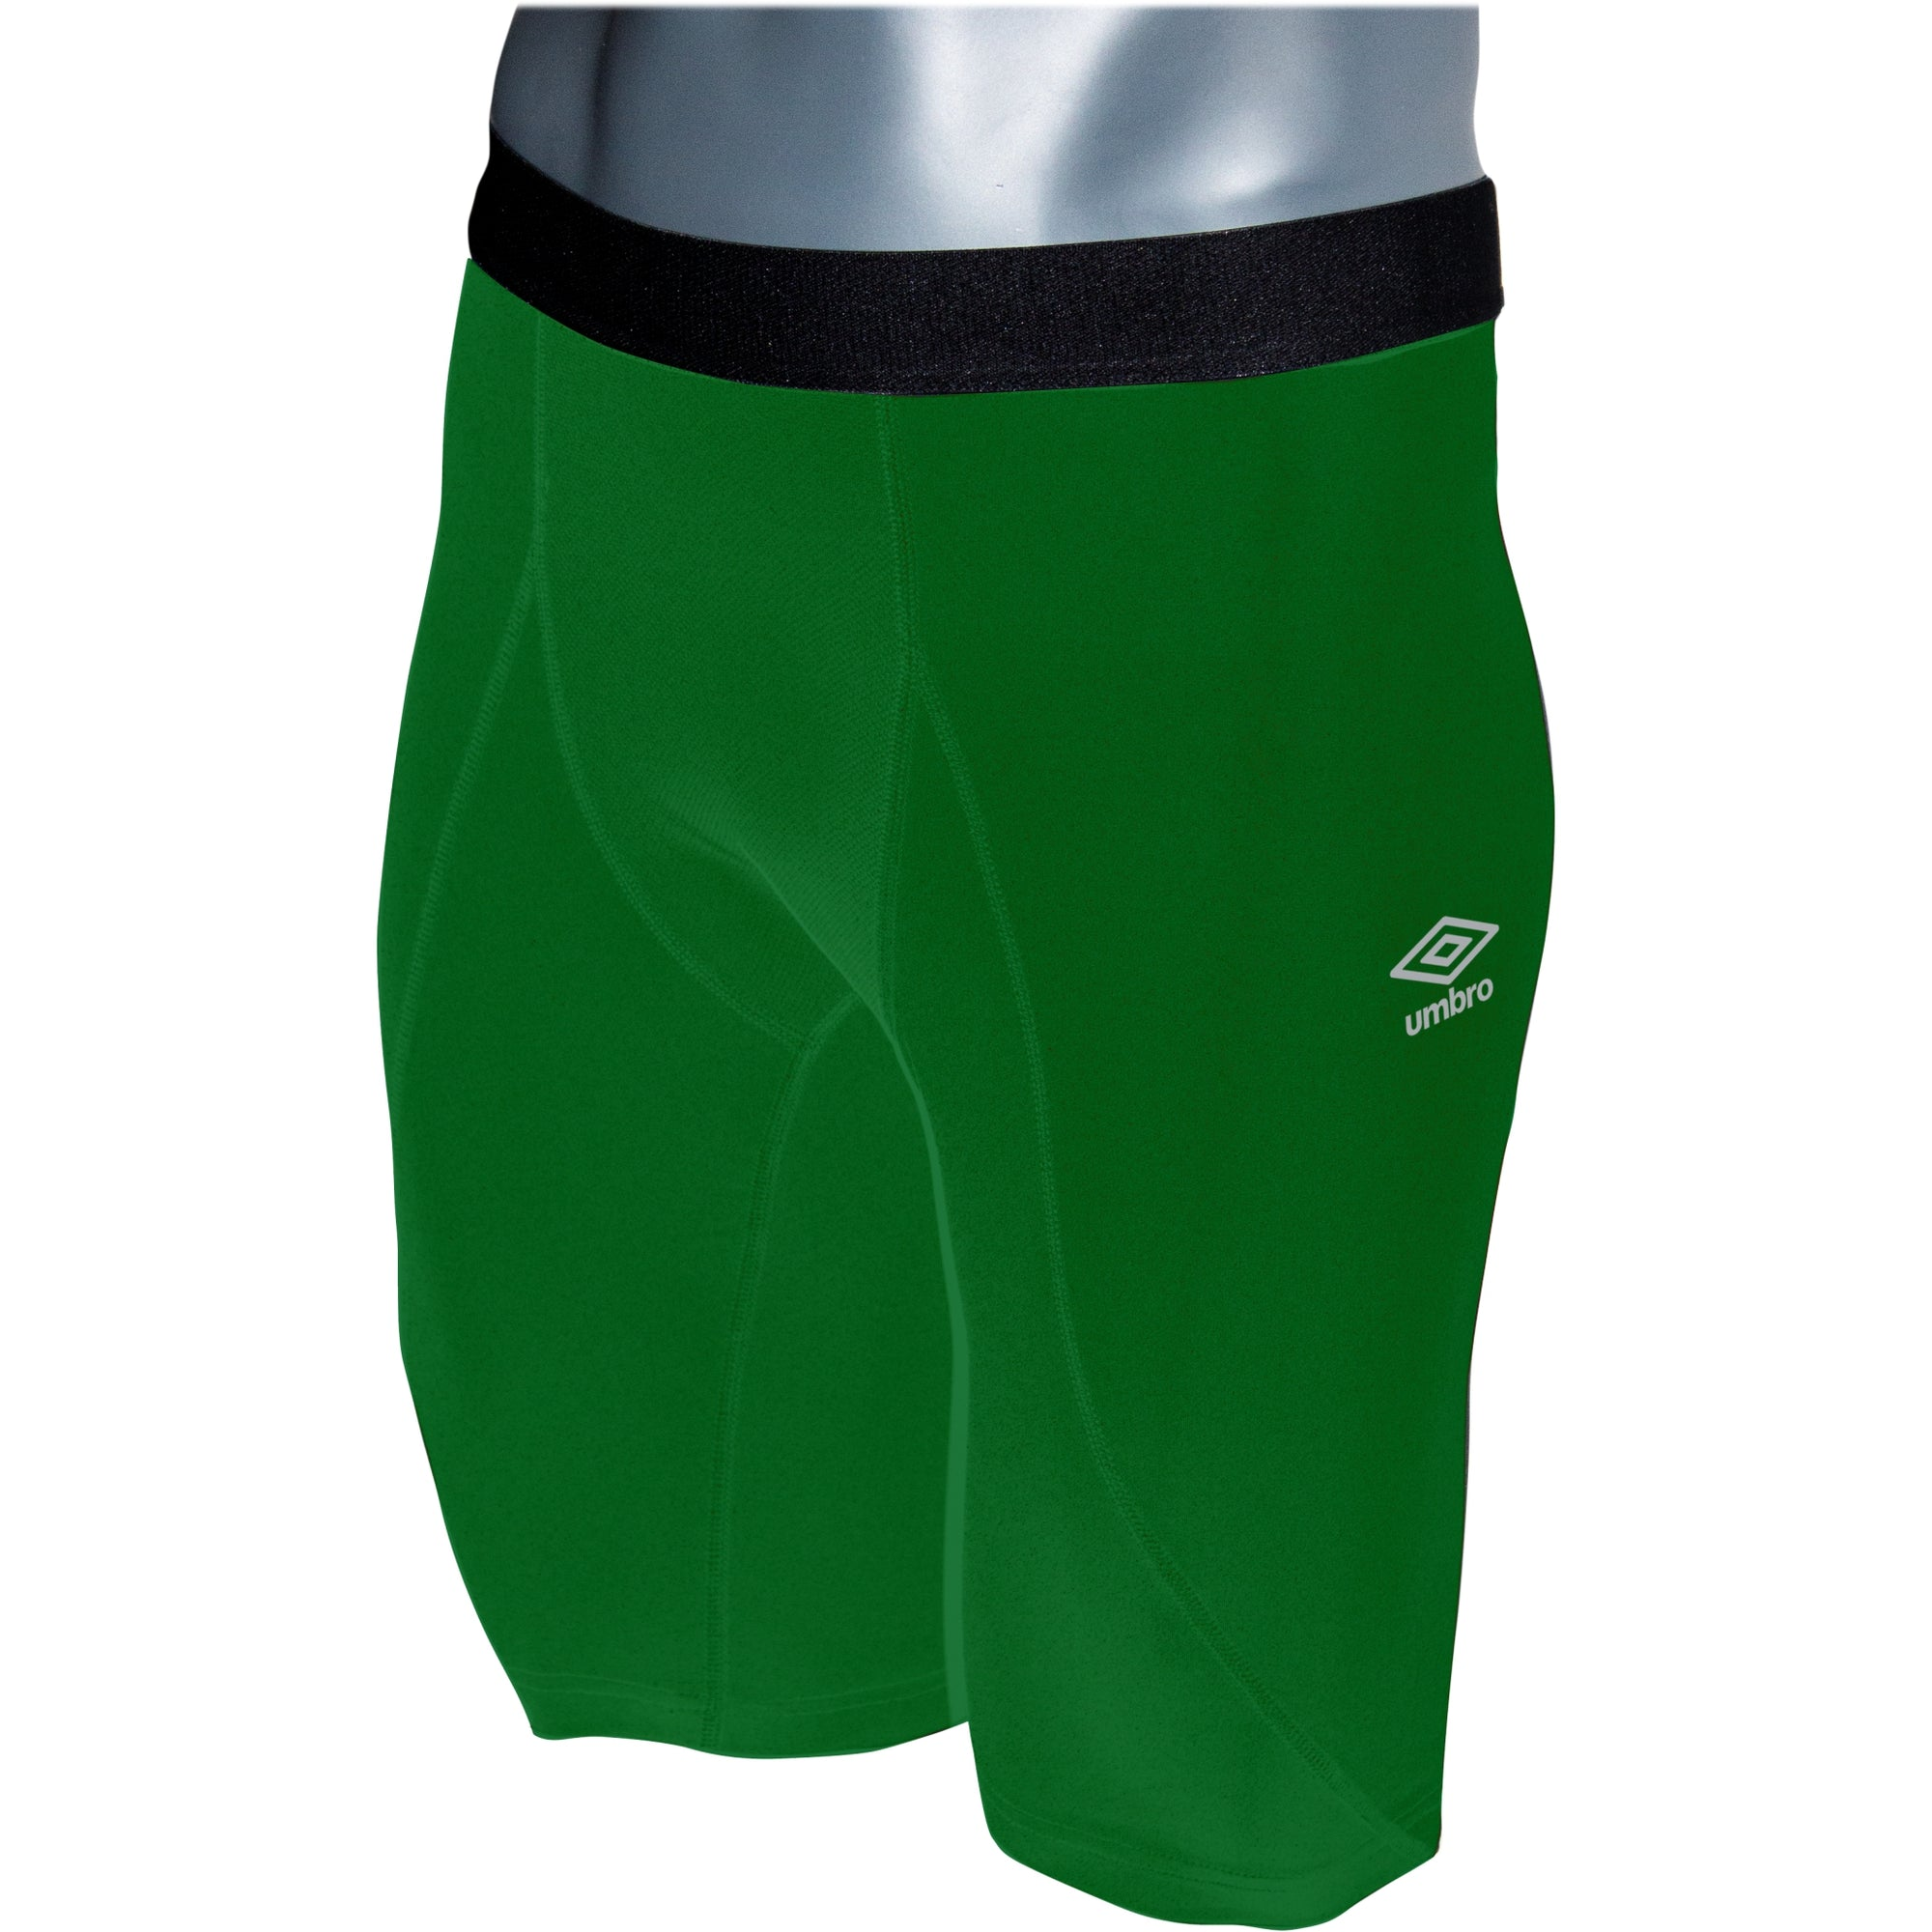 Umbro Elite Player Power Short in emerald with black waist band